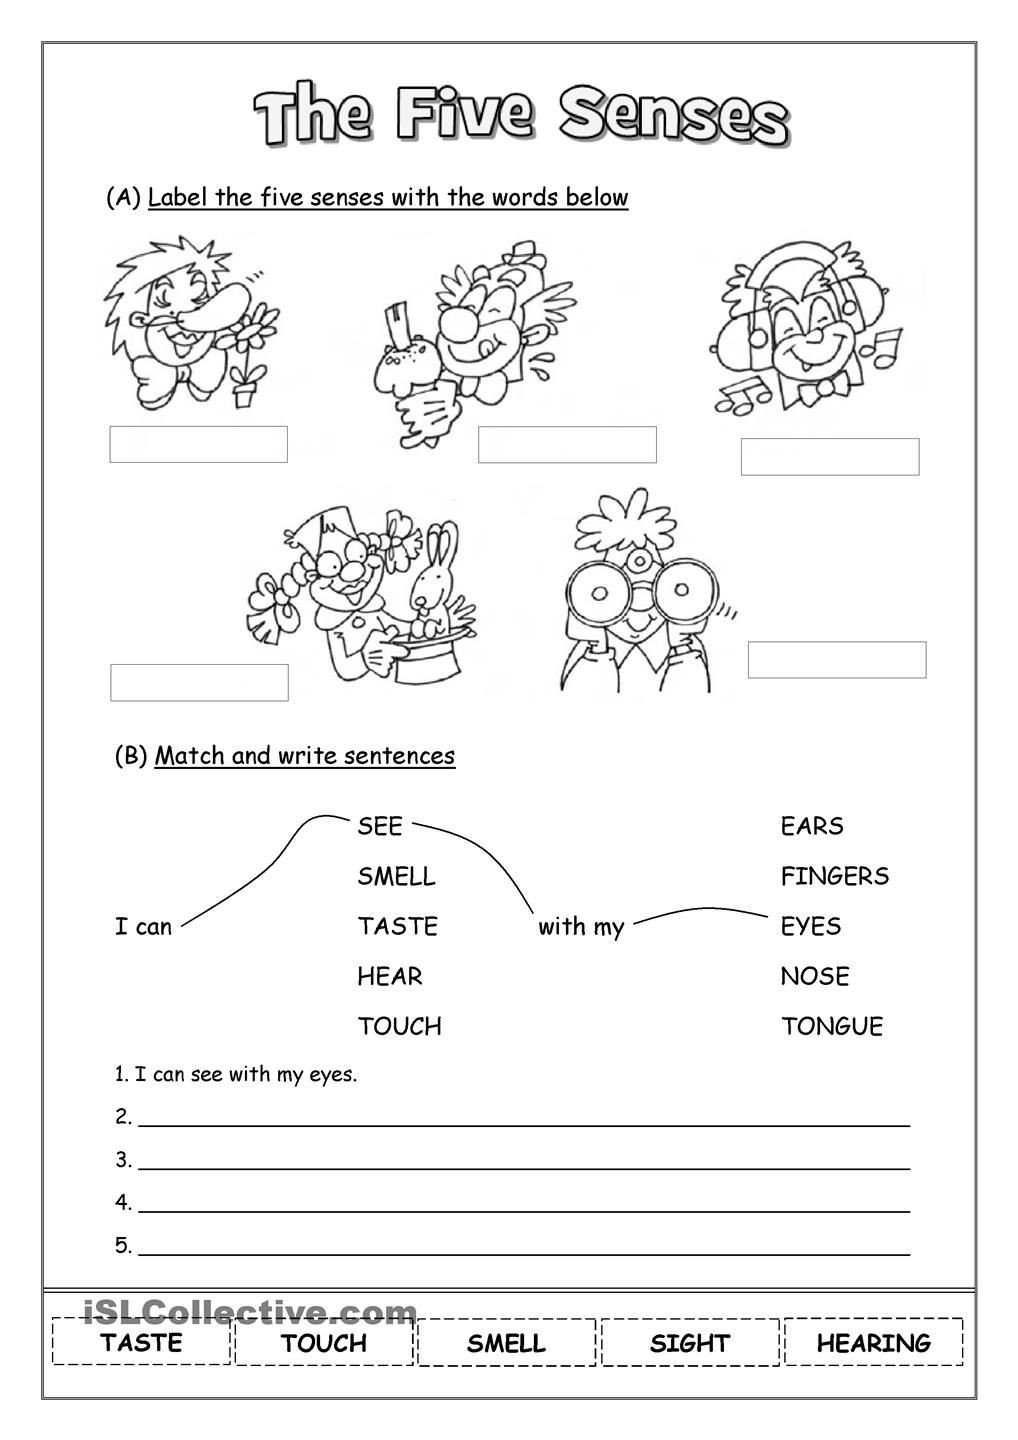 The Five Senses Worksheets the Five Senses